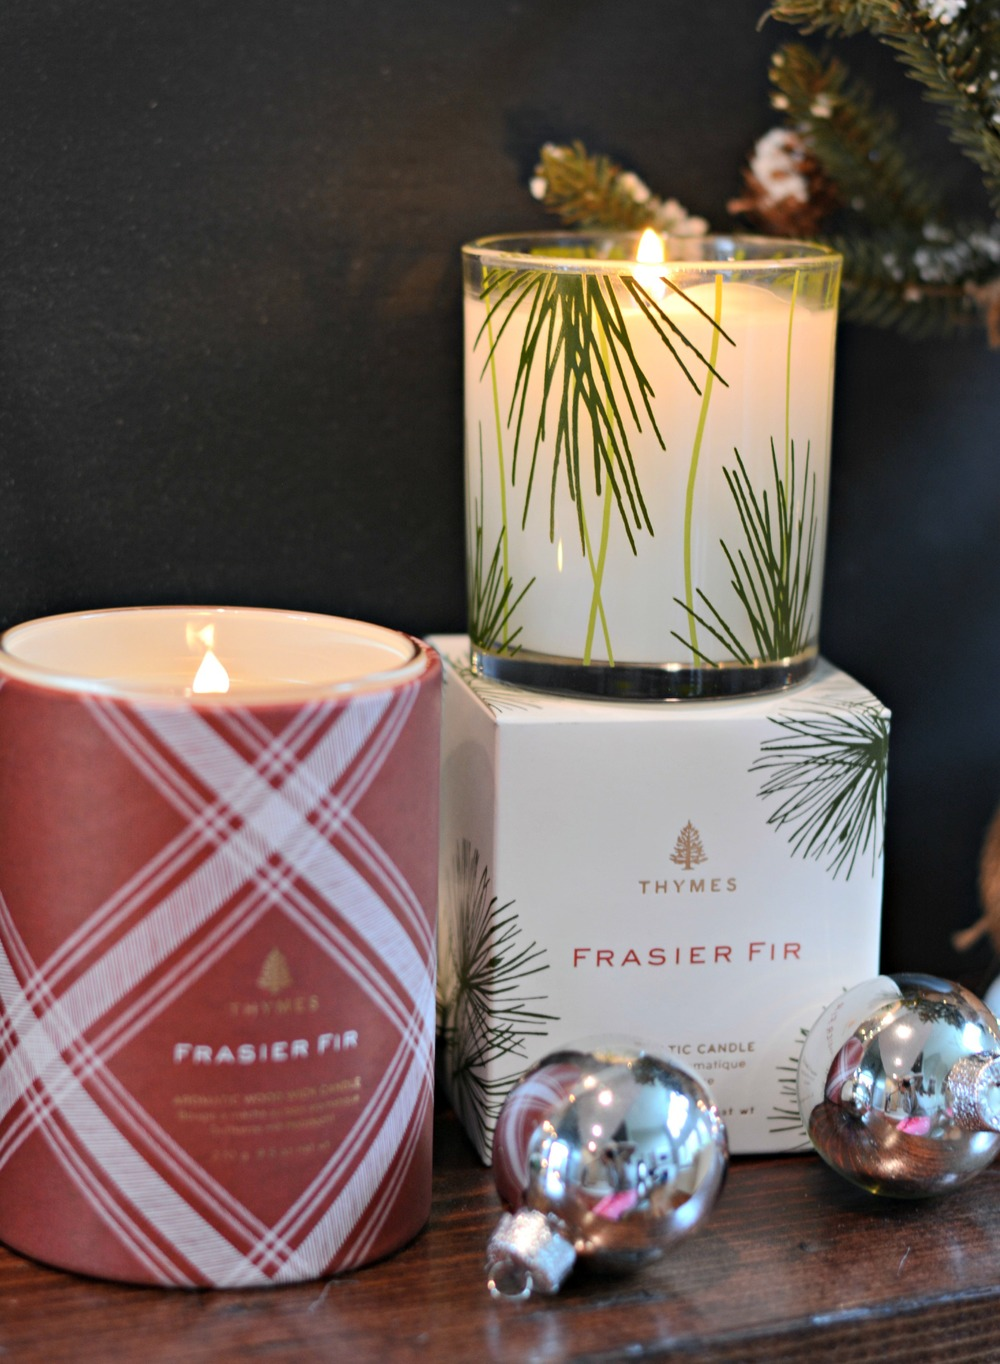 Frasier Fir Wood Wick Candle   &   Frasier Fir Pine Candle